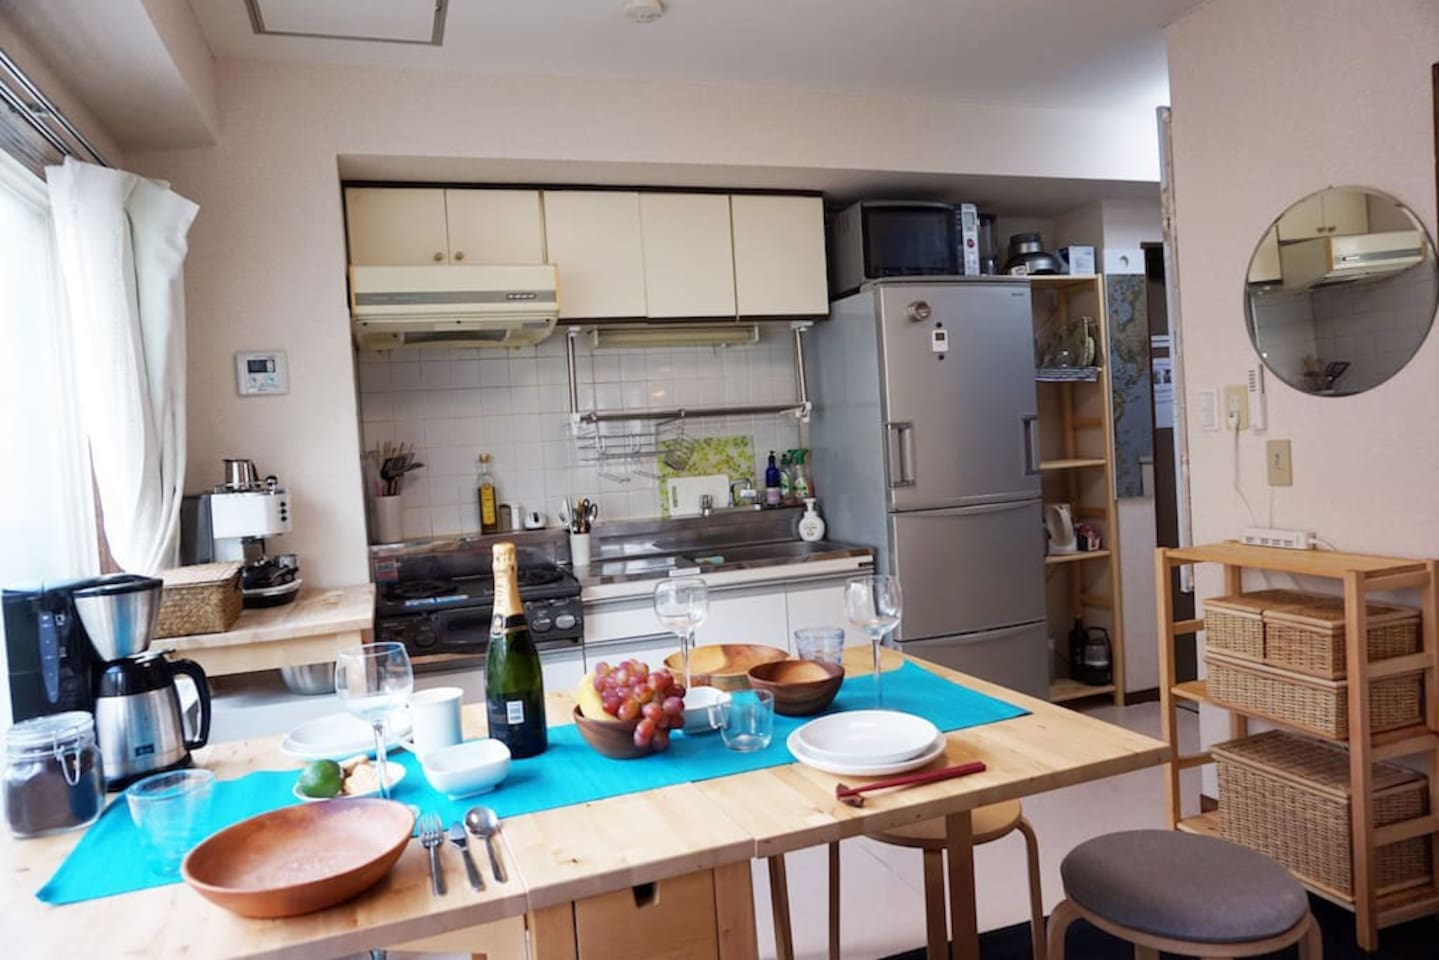 The kitchen and dining area is great for a drink or even a full course meal with friends. Our large fridge can handle it.